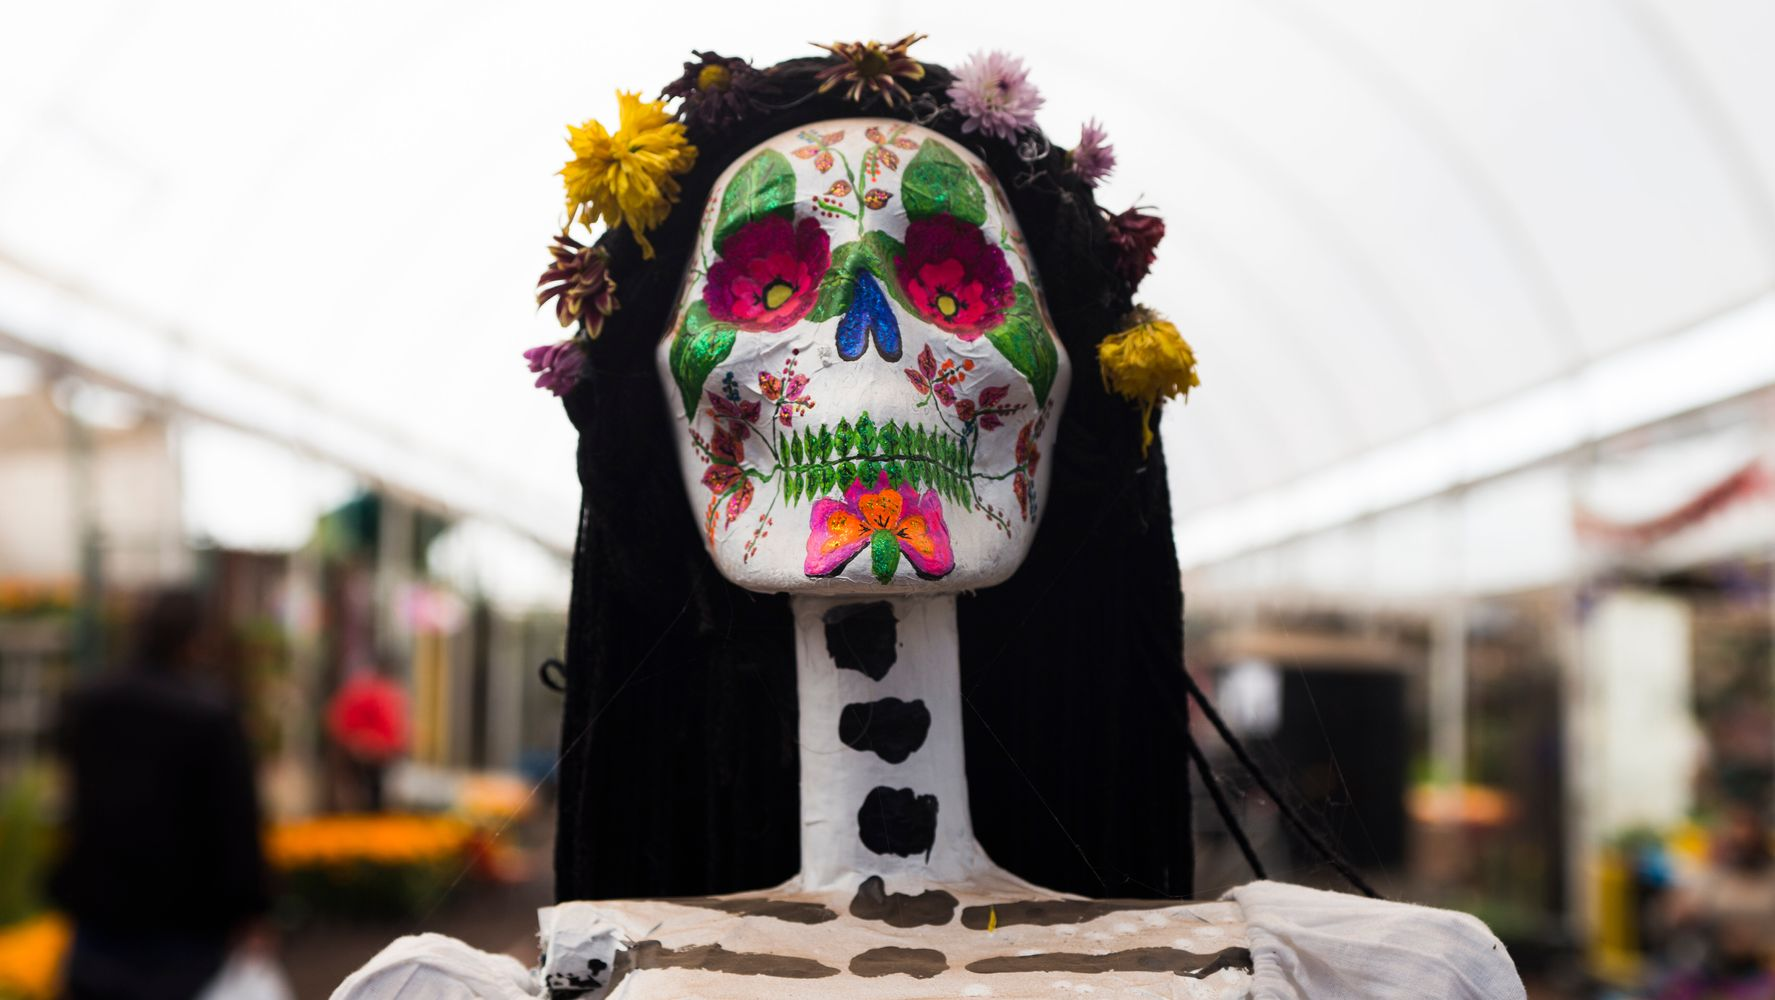 Mexico Asks Cemeteries To Close Ahead Of Day Of The Dead, Fearing Coronavirus Rebound